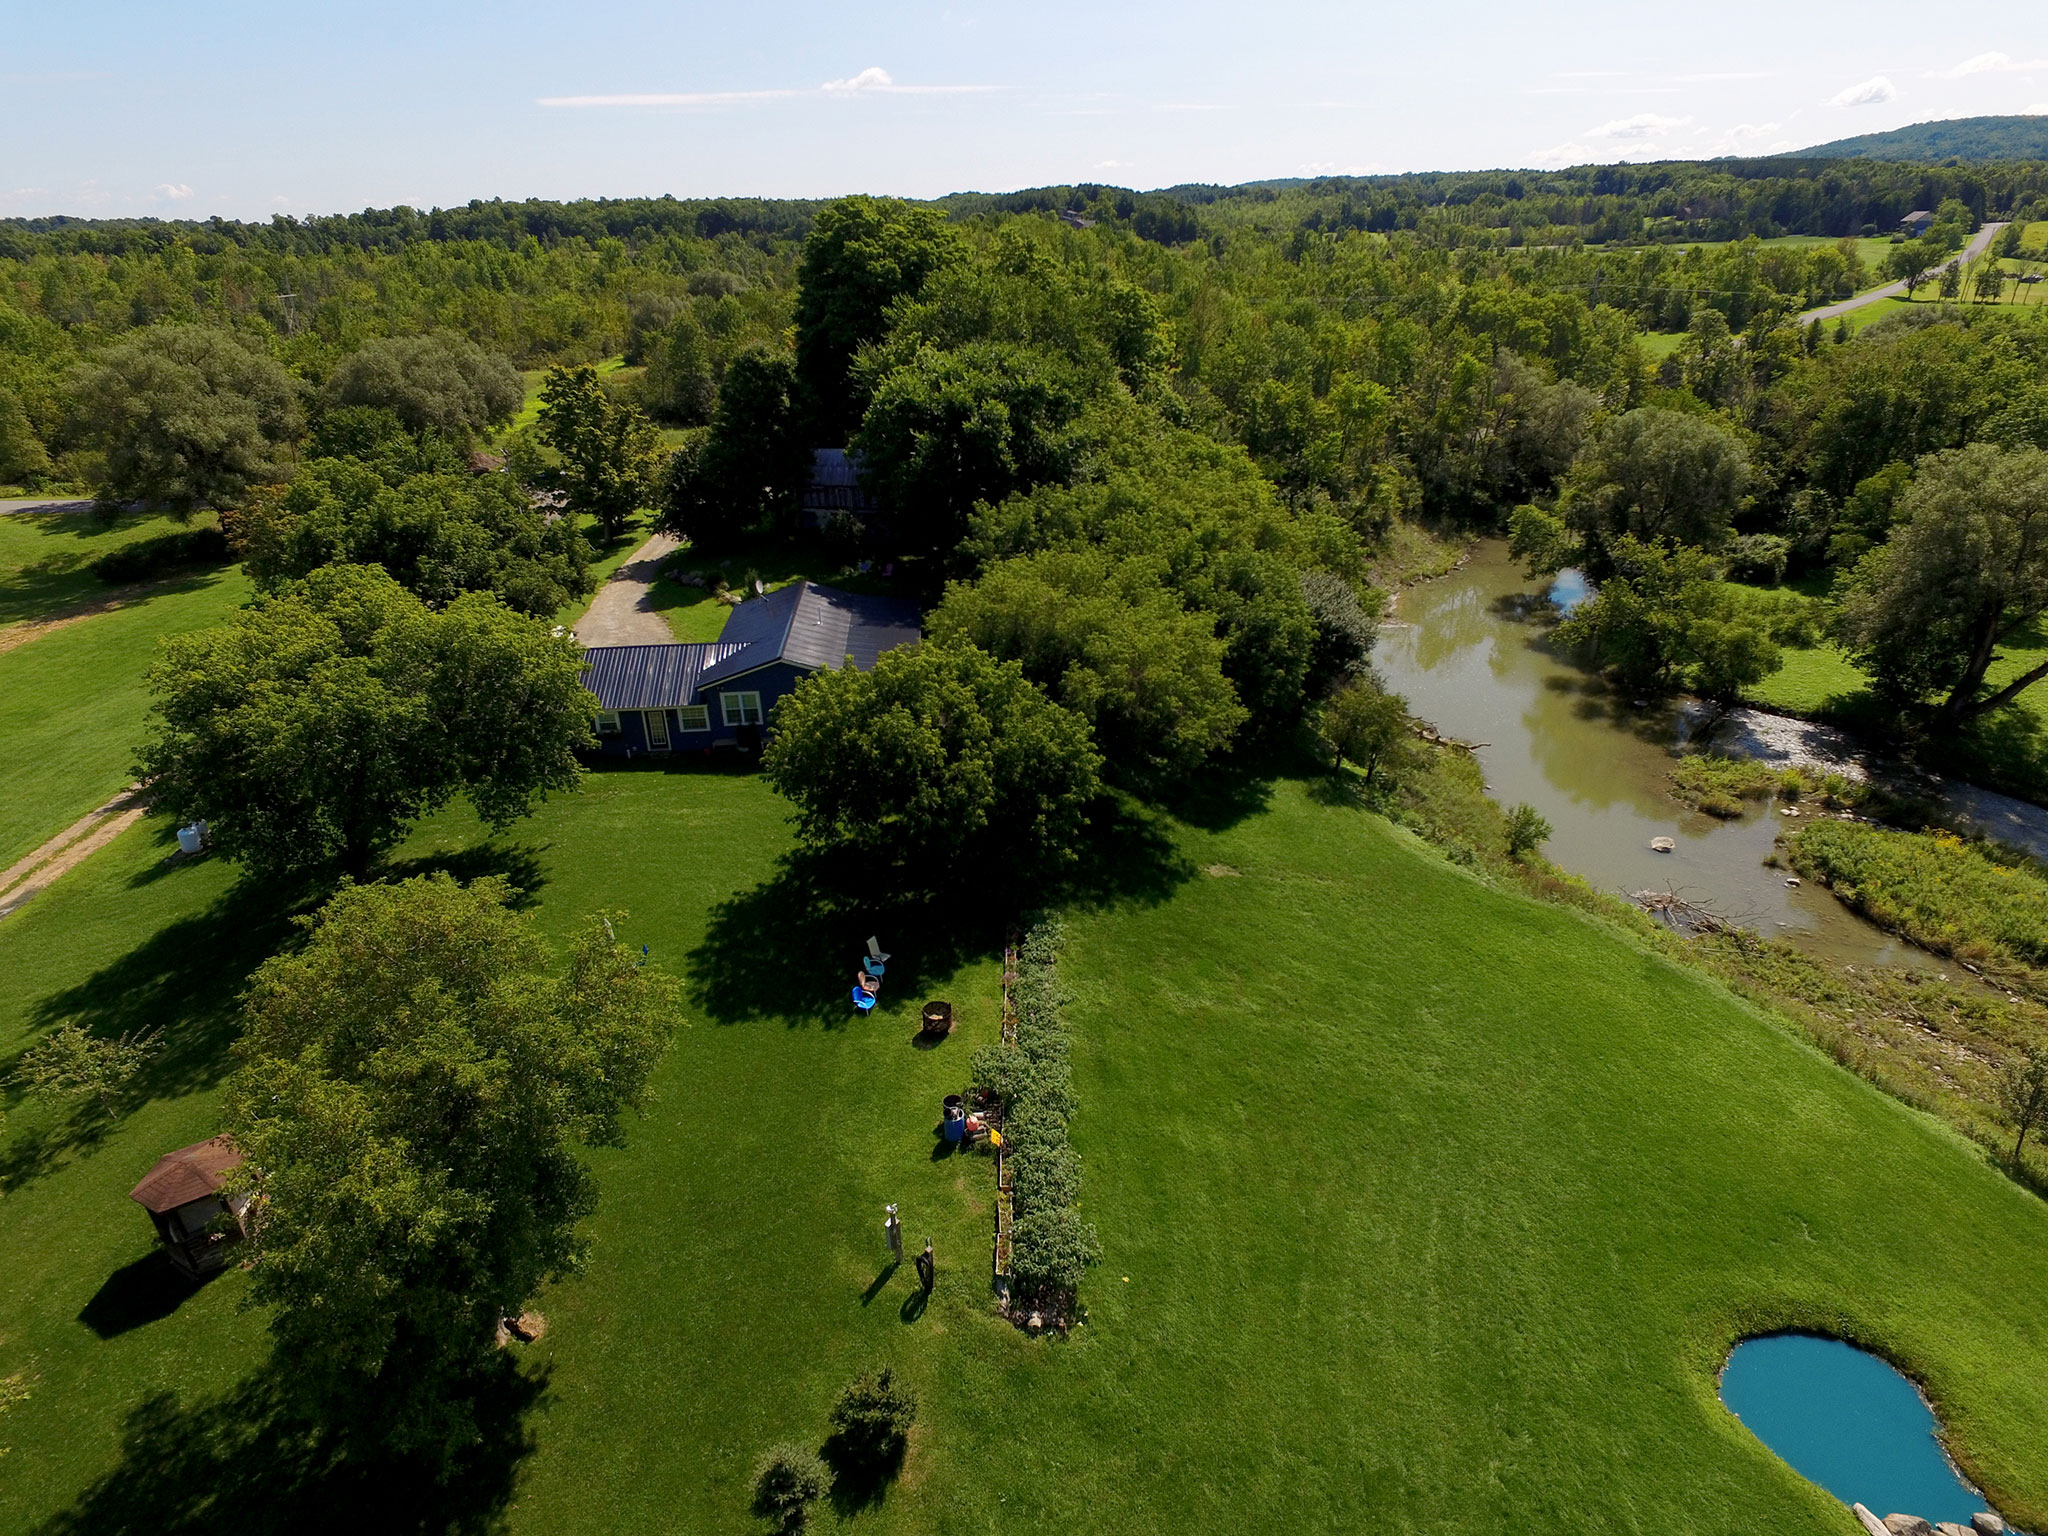 Aerial photo of backyard with creek at property in Canajoharie, New York.